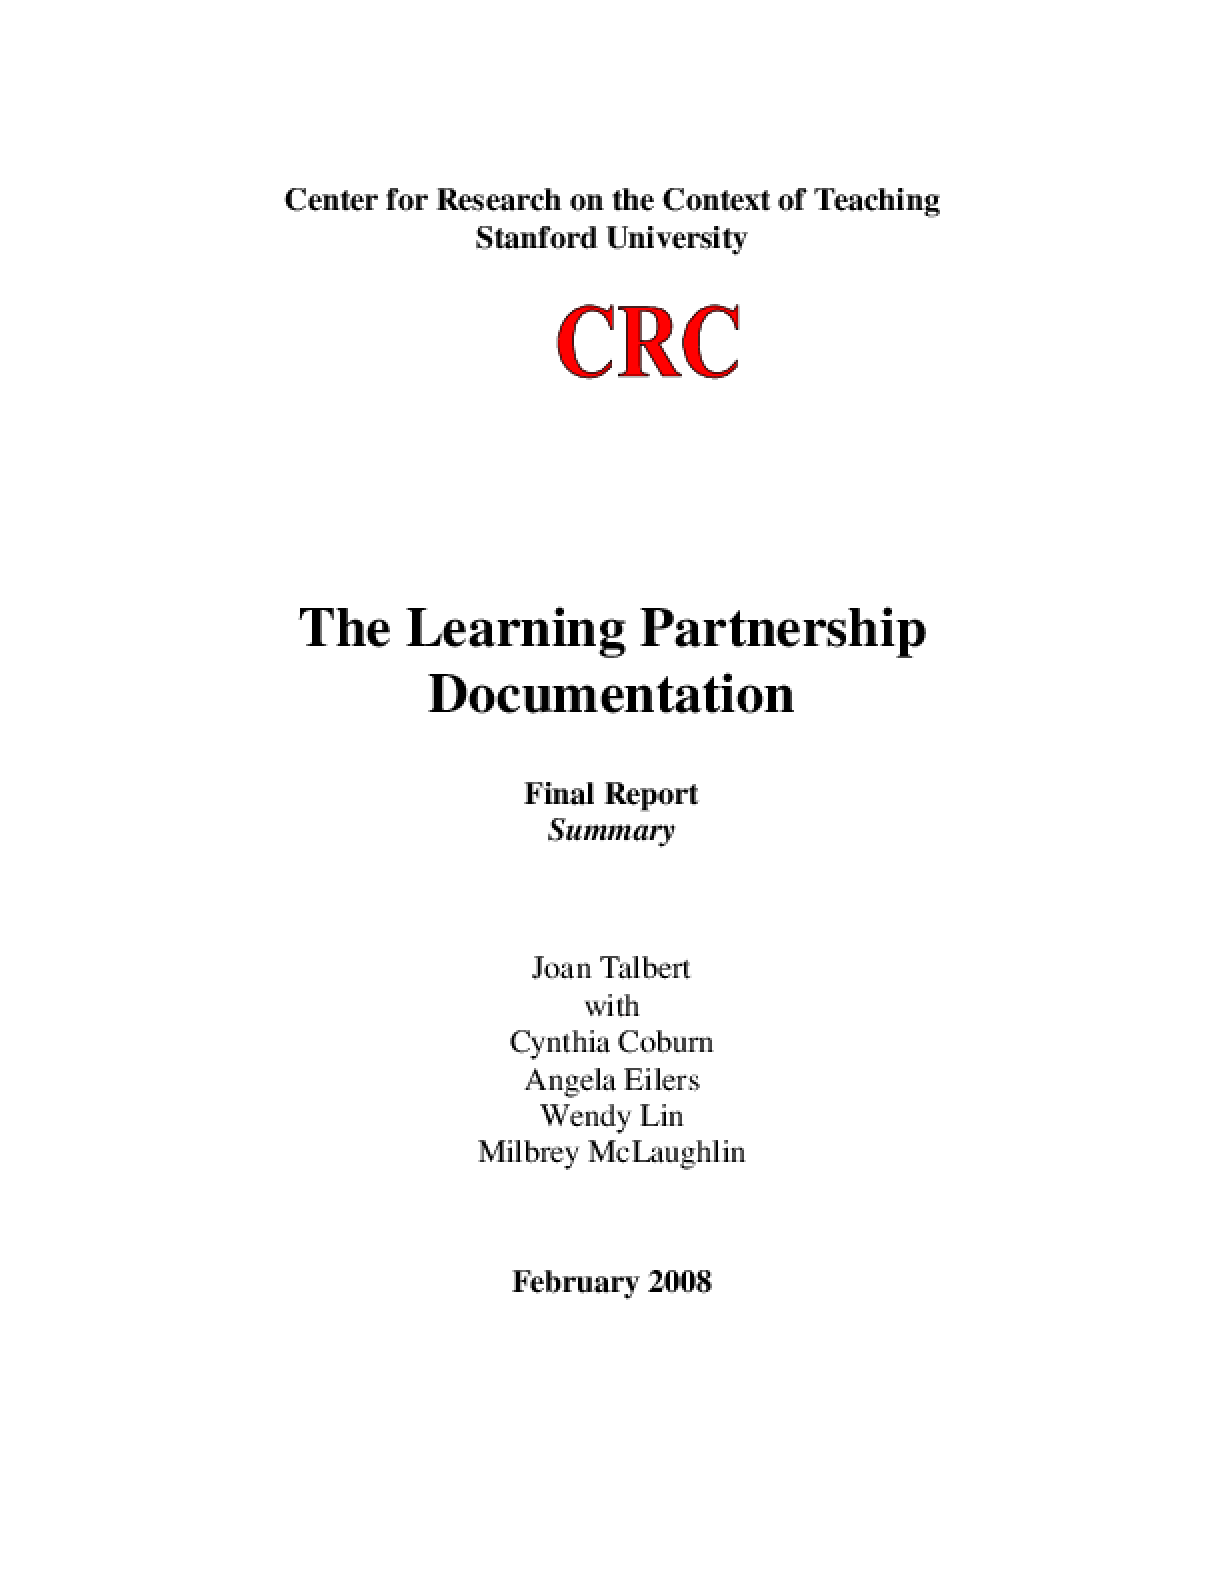 The Learning Partnership Documentation: Final Report Summary